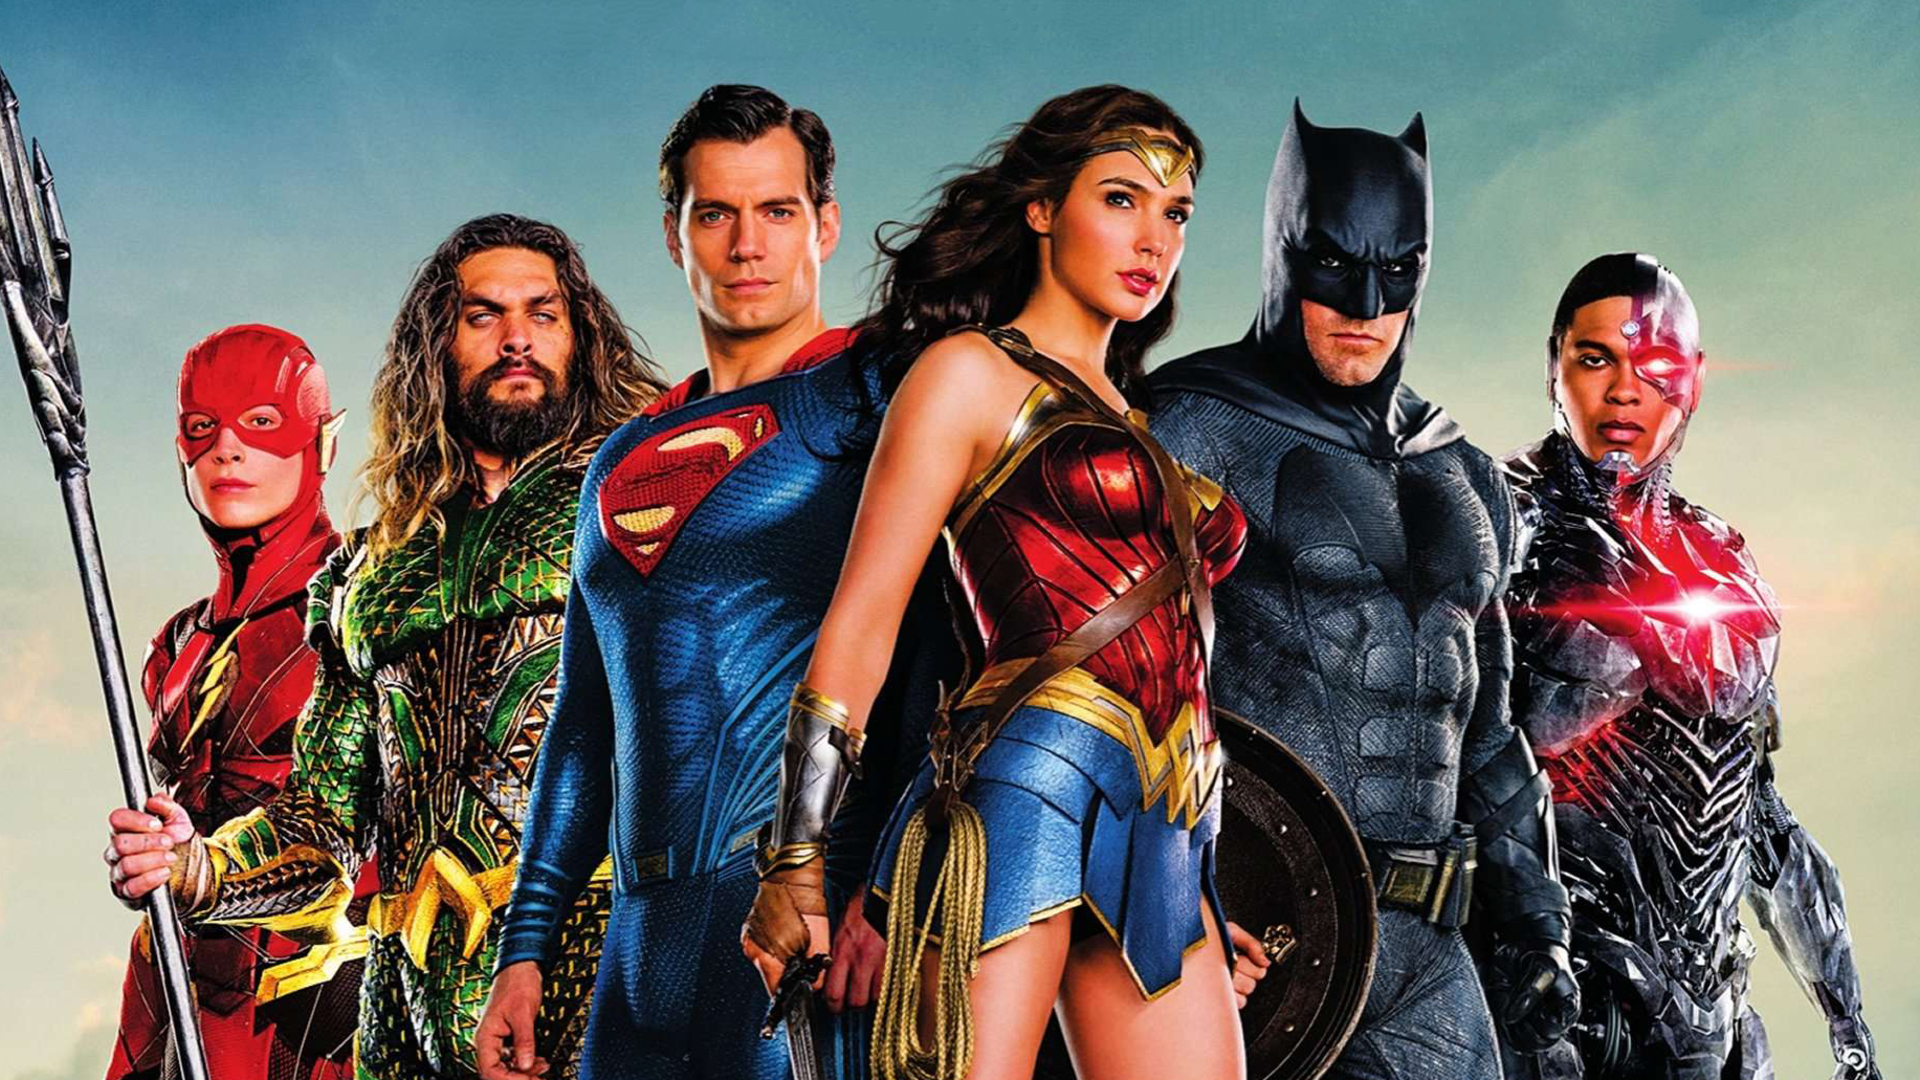 Justice League Movie Poster So